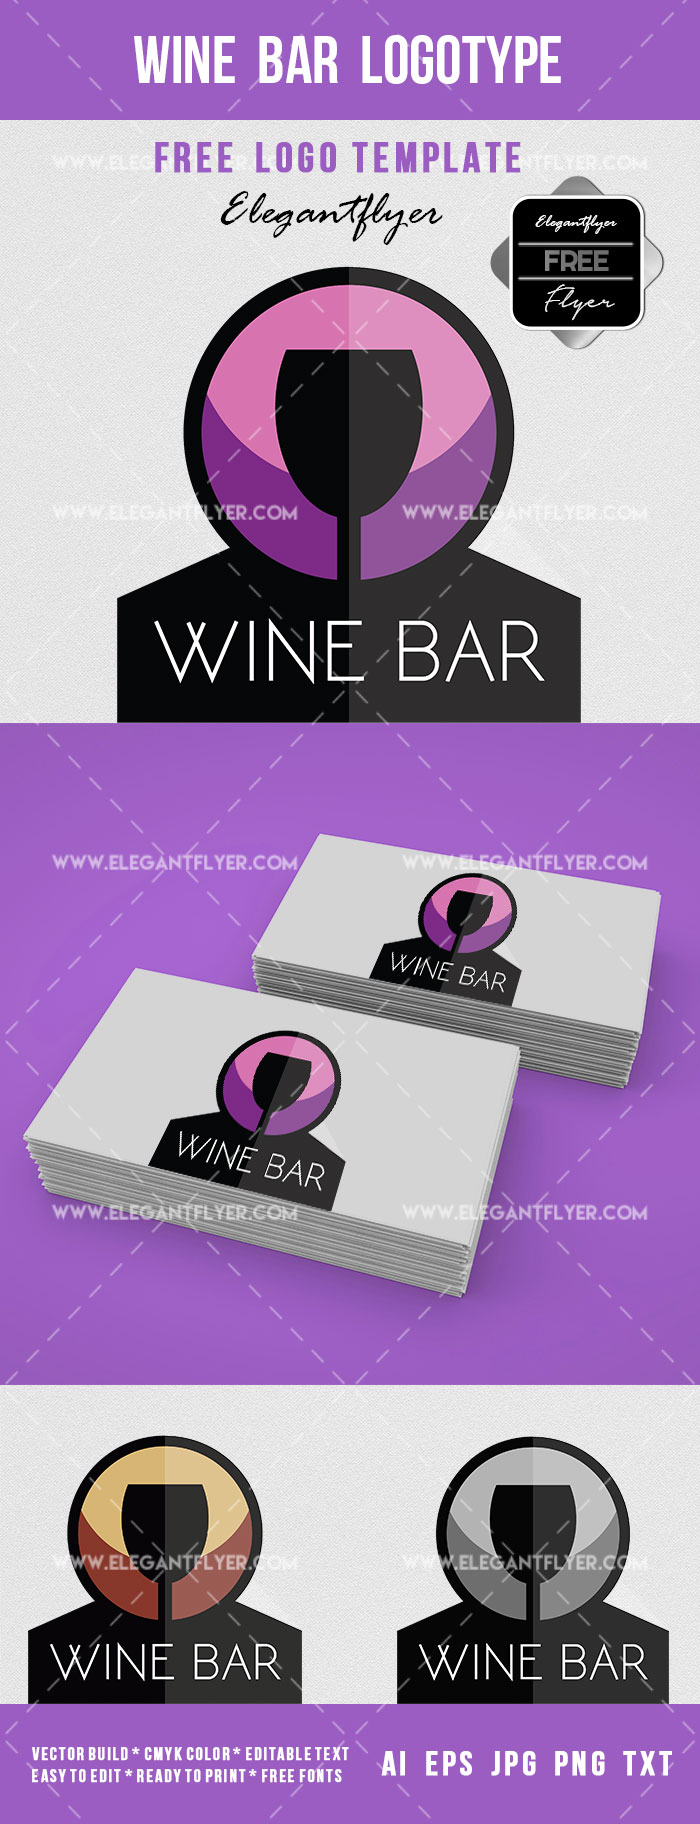 Wine Bar Logotype – Free Logo Template